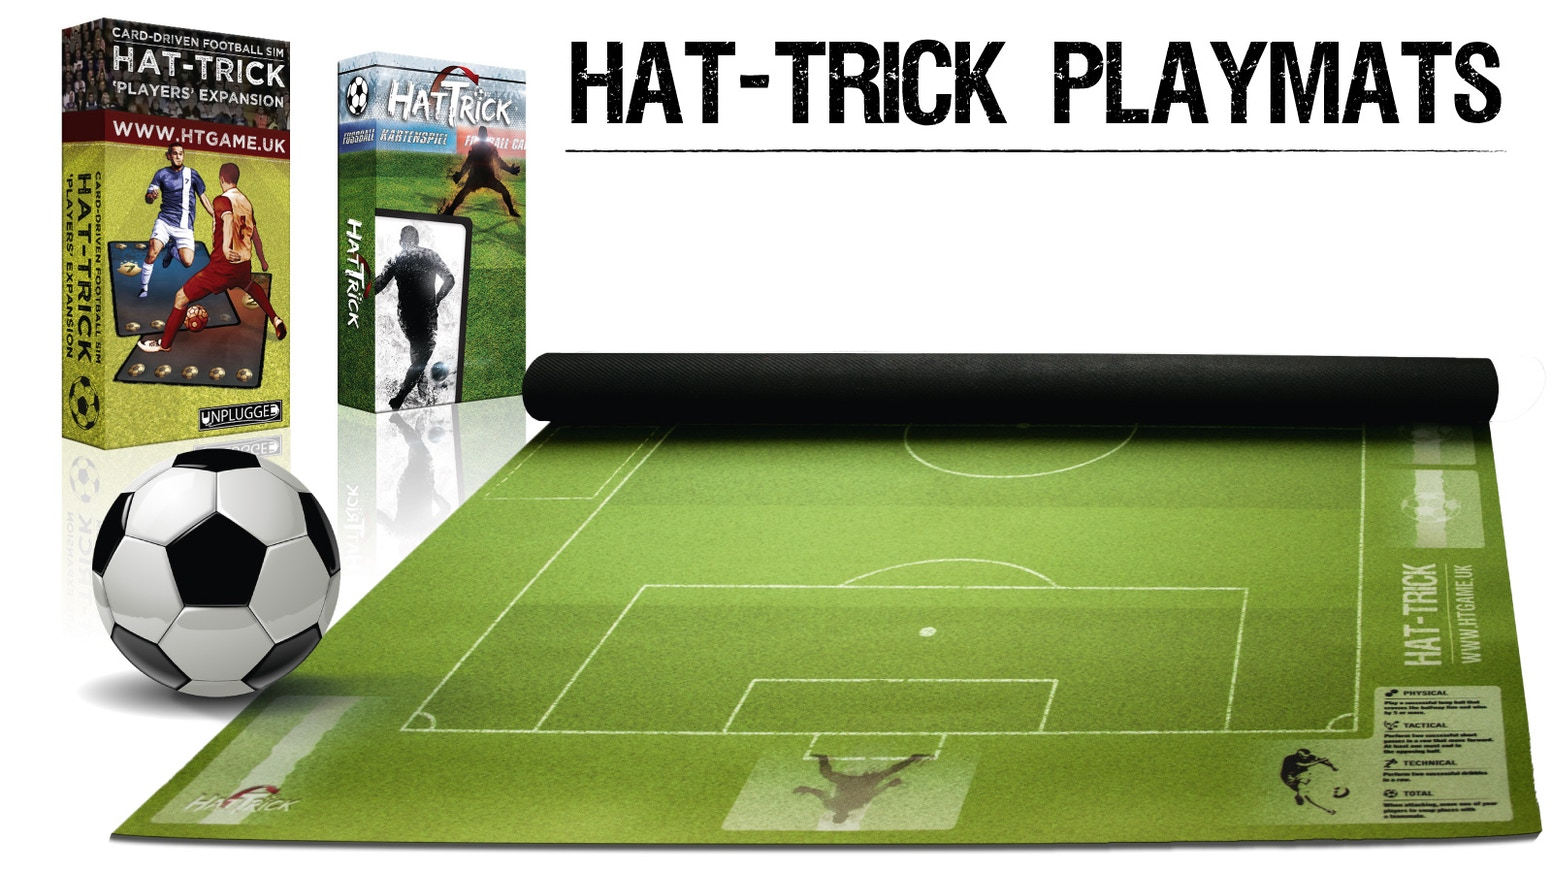 Strategy board game for football lovers. Now playable on an extremely durable high quality playmat.